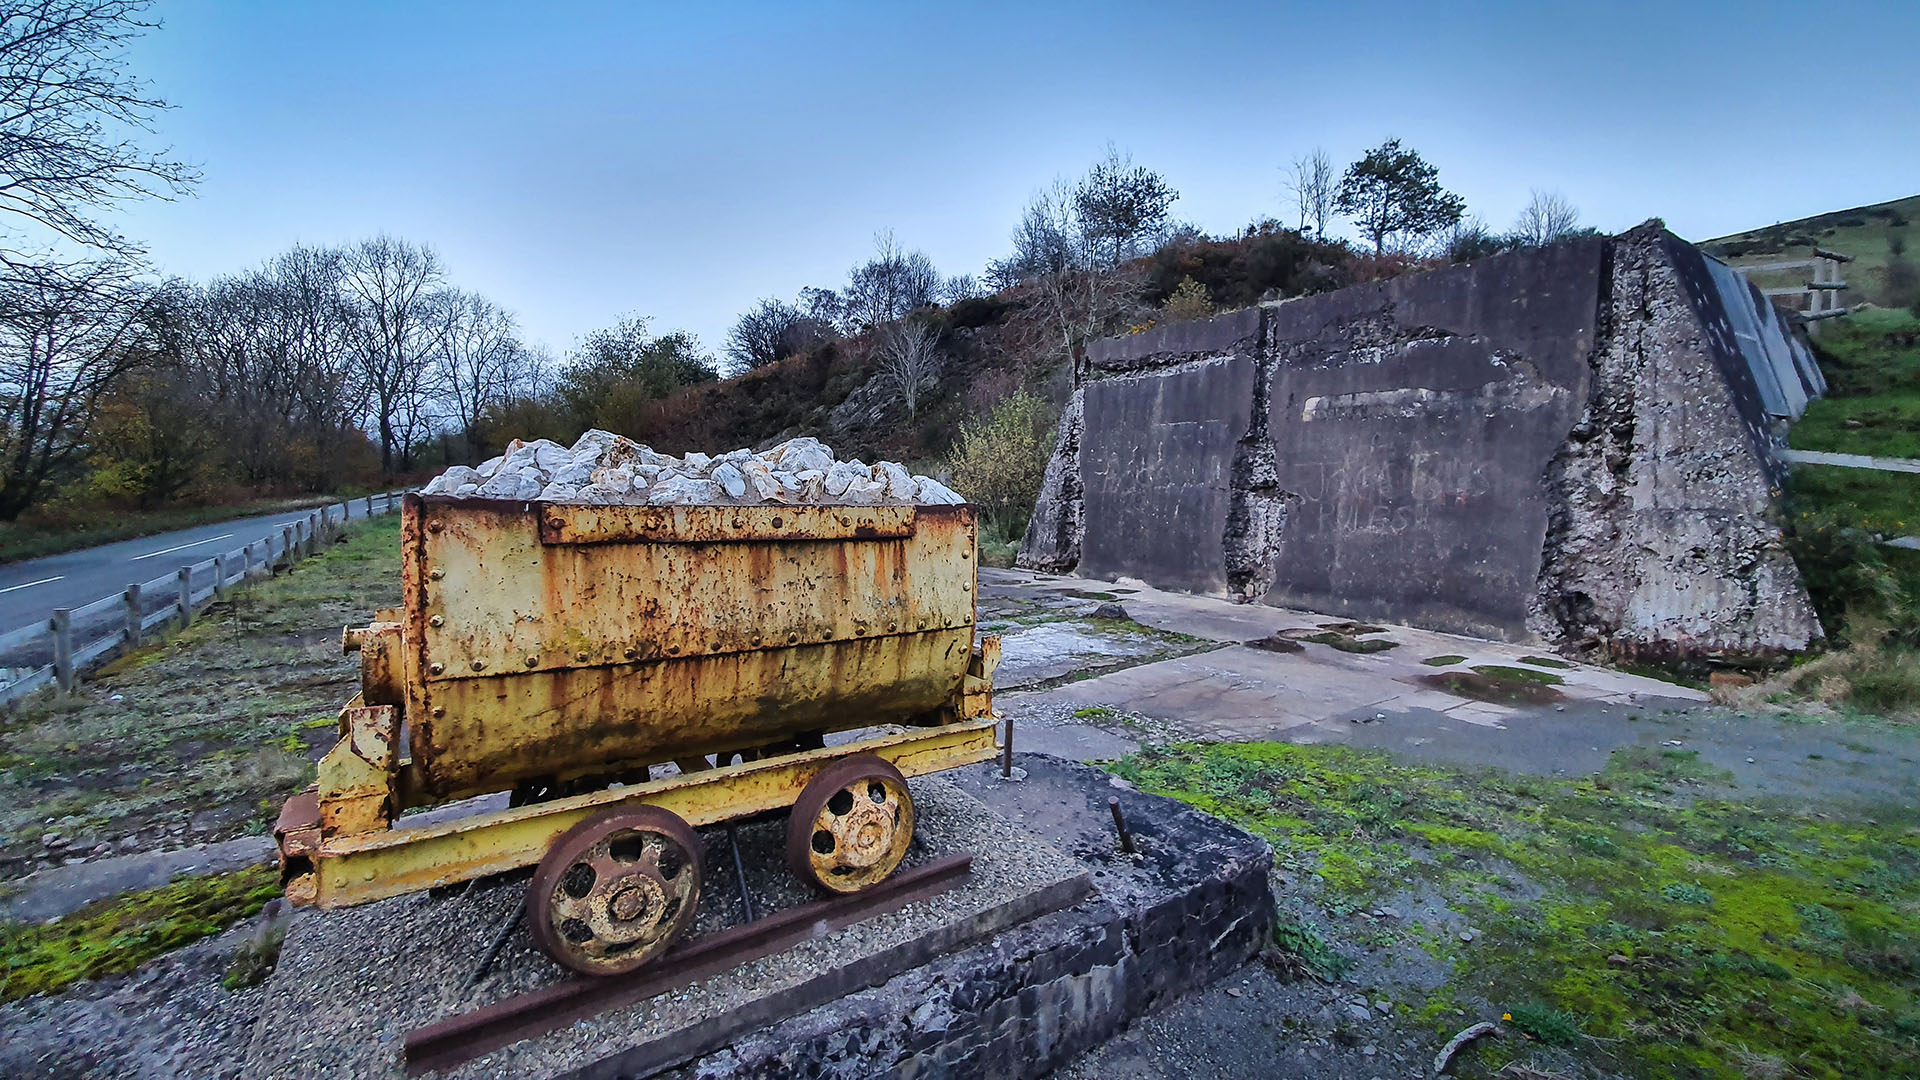 Cothercott Mine and workings, which mined and crushed 'barytes' (Barium sulphate) up until the 1920s